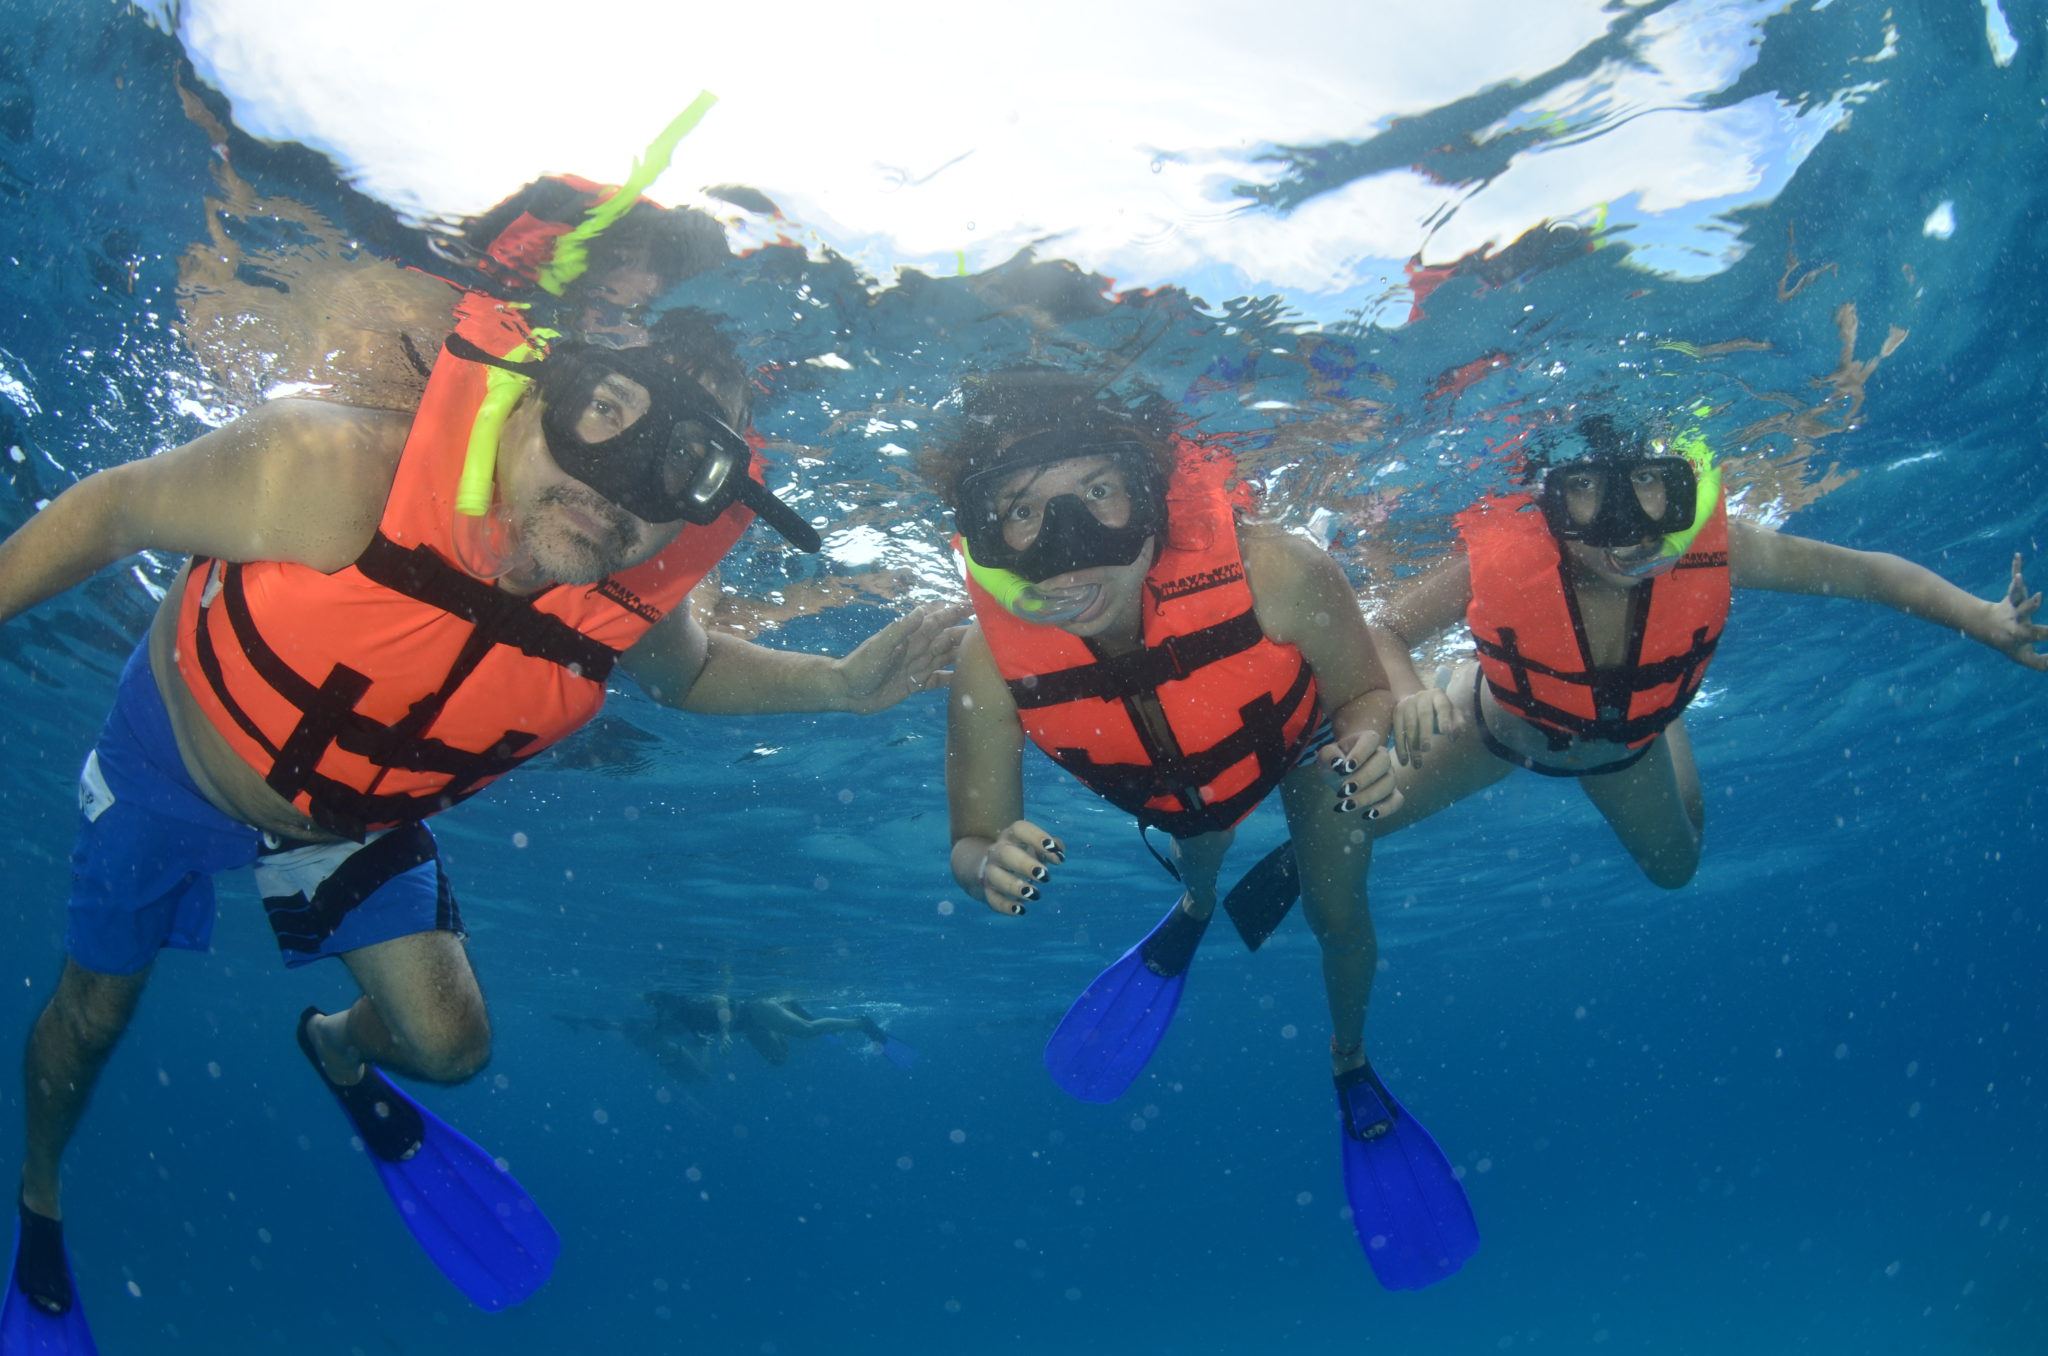 Cancun snorkelling experience in Mexico